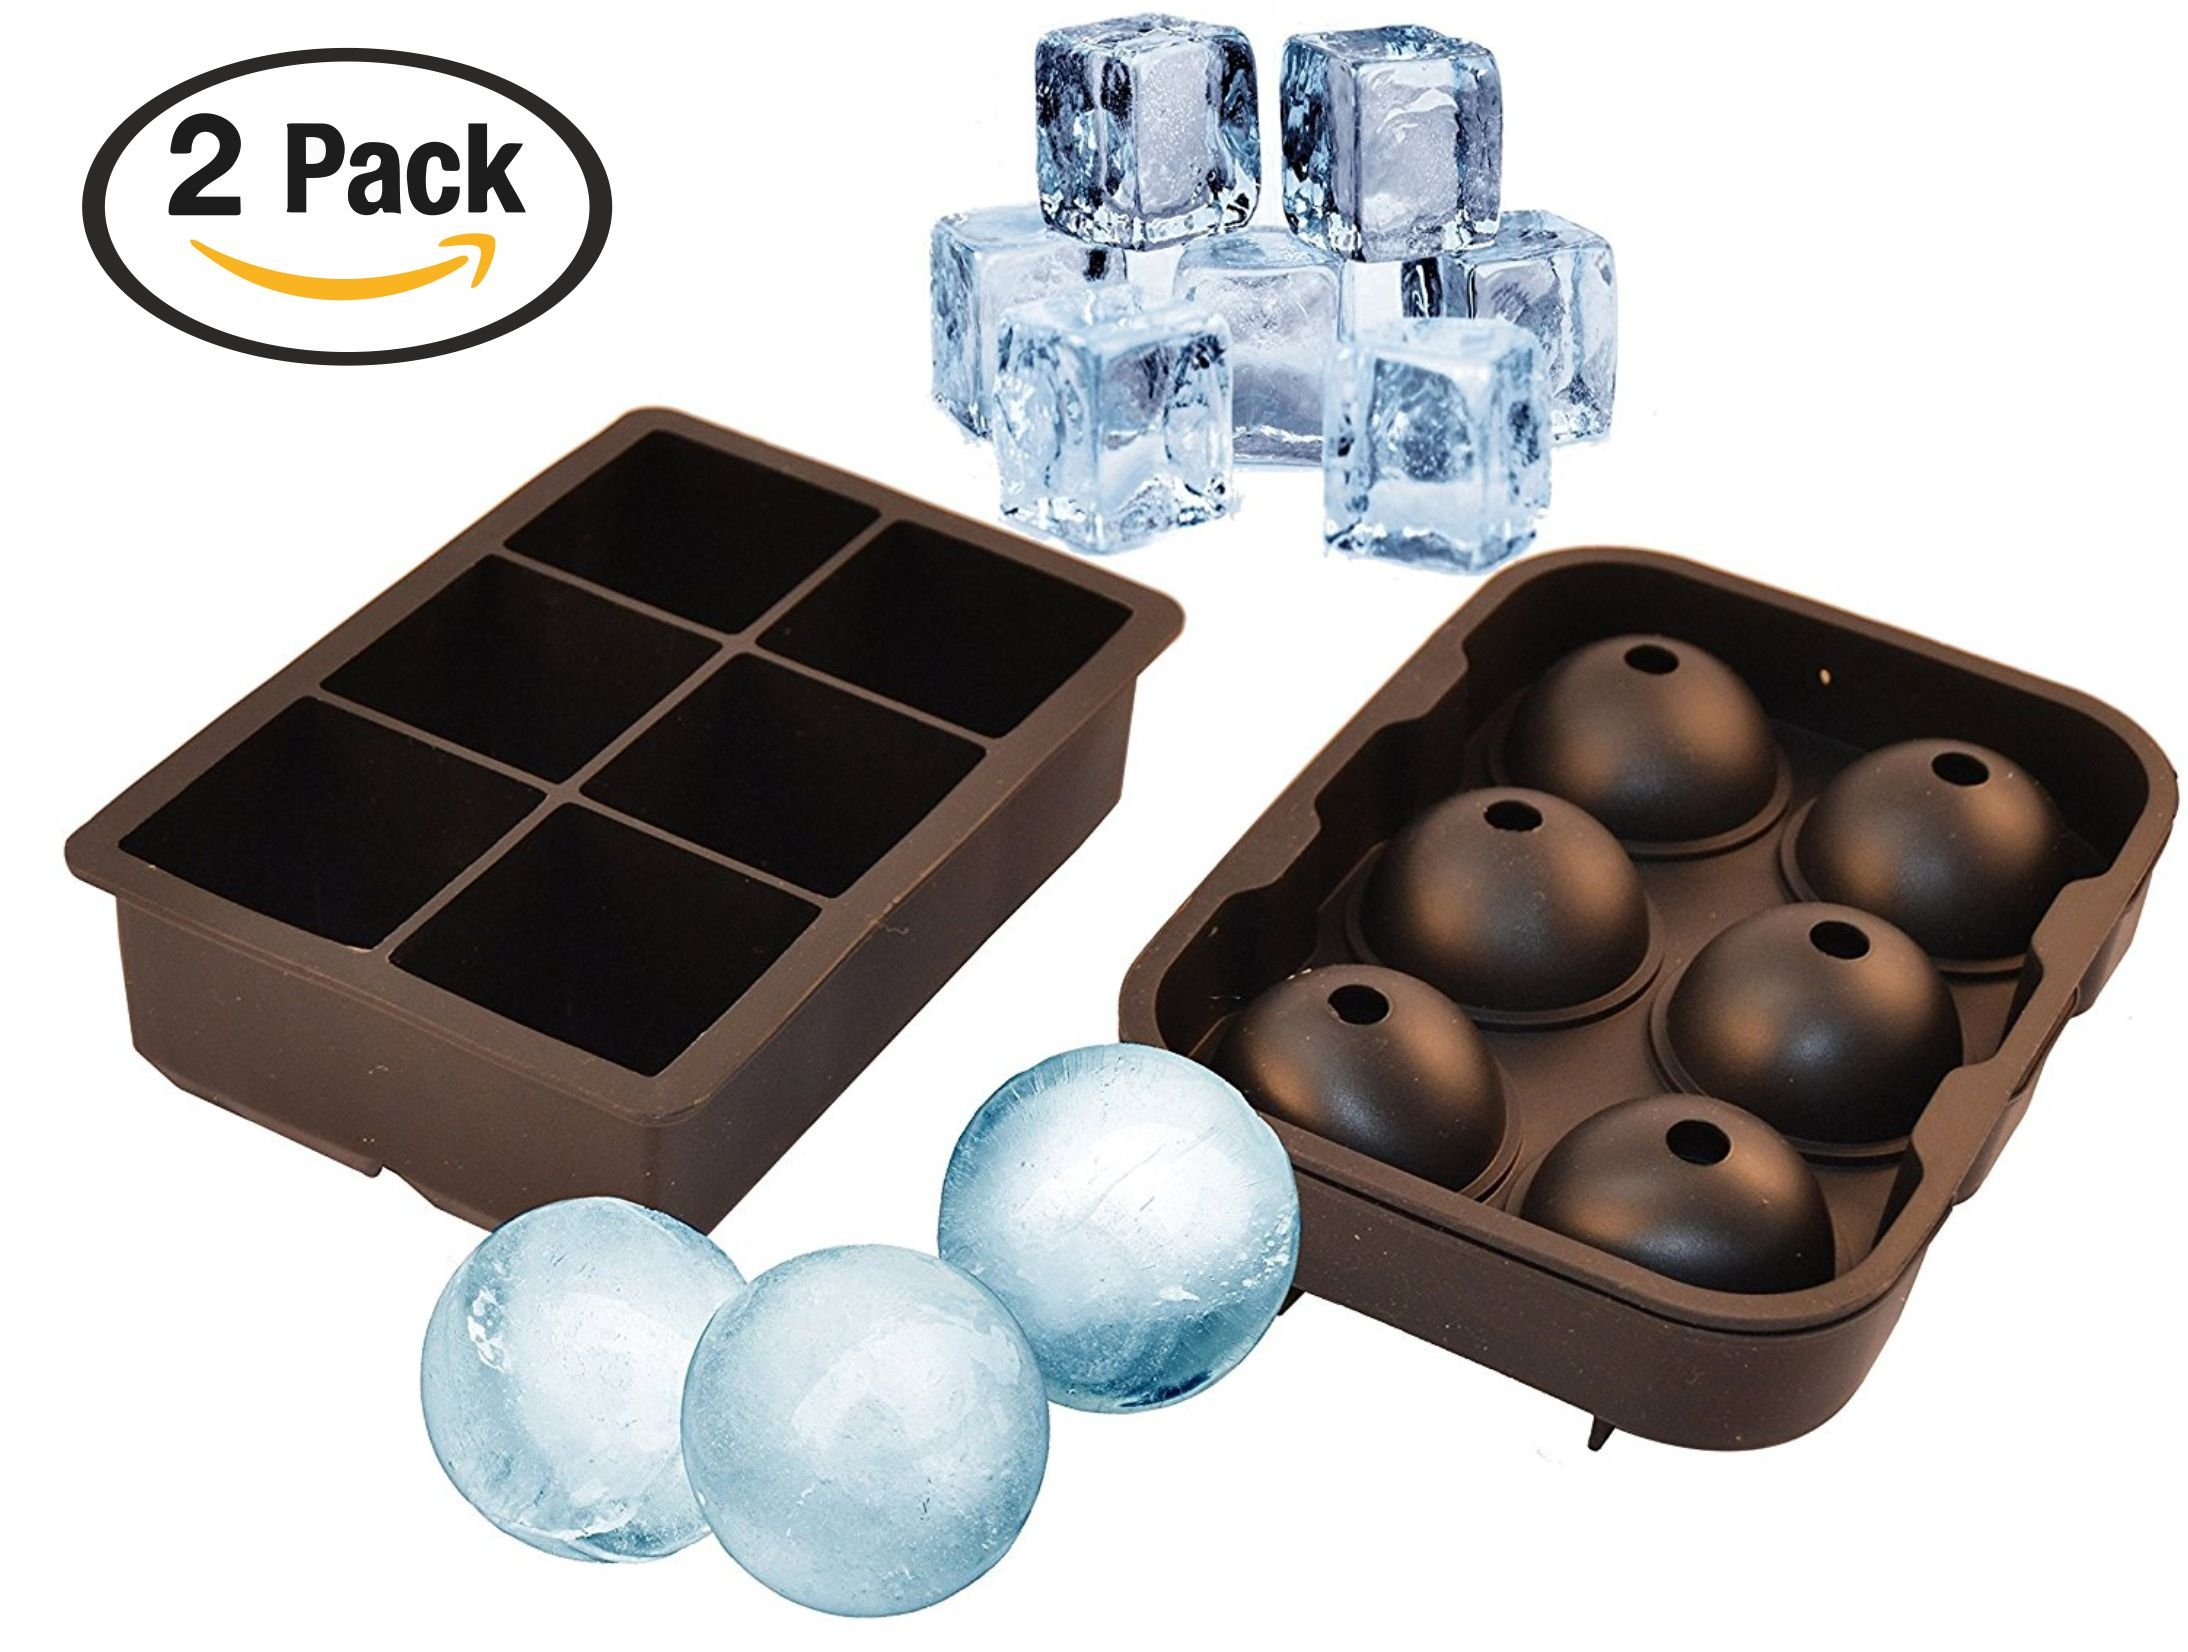 UnicGlam Large Ice Cube Trays (Set of 2) Combo Silicone Square Mold and Sphere Ice Ball Maker